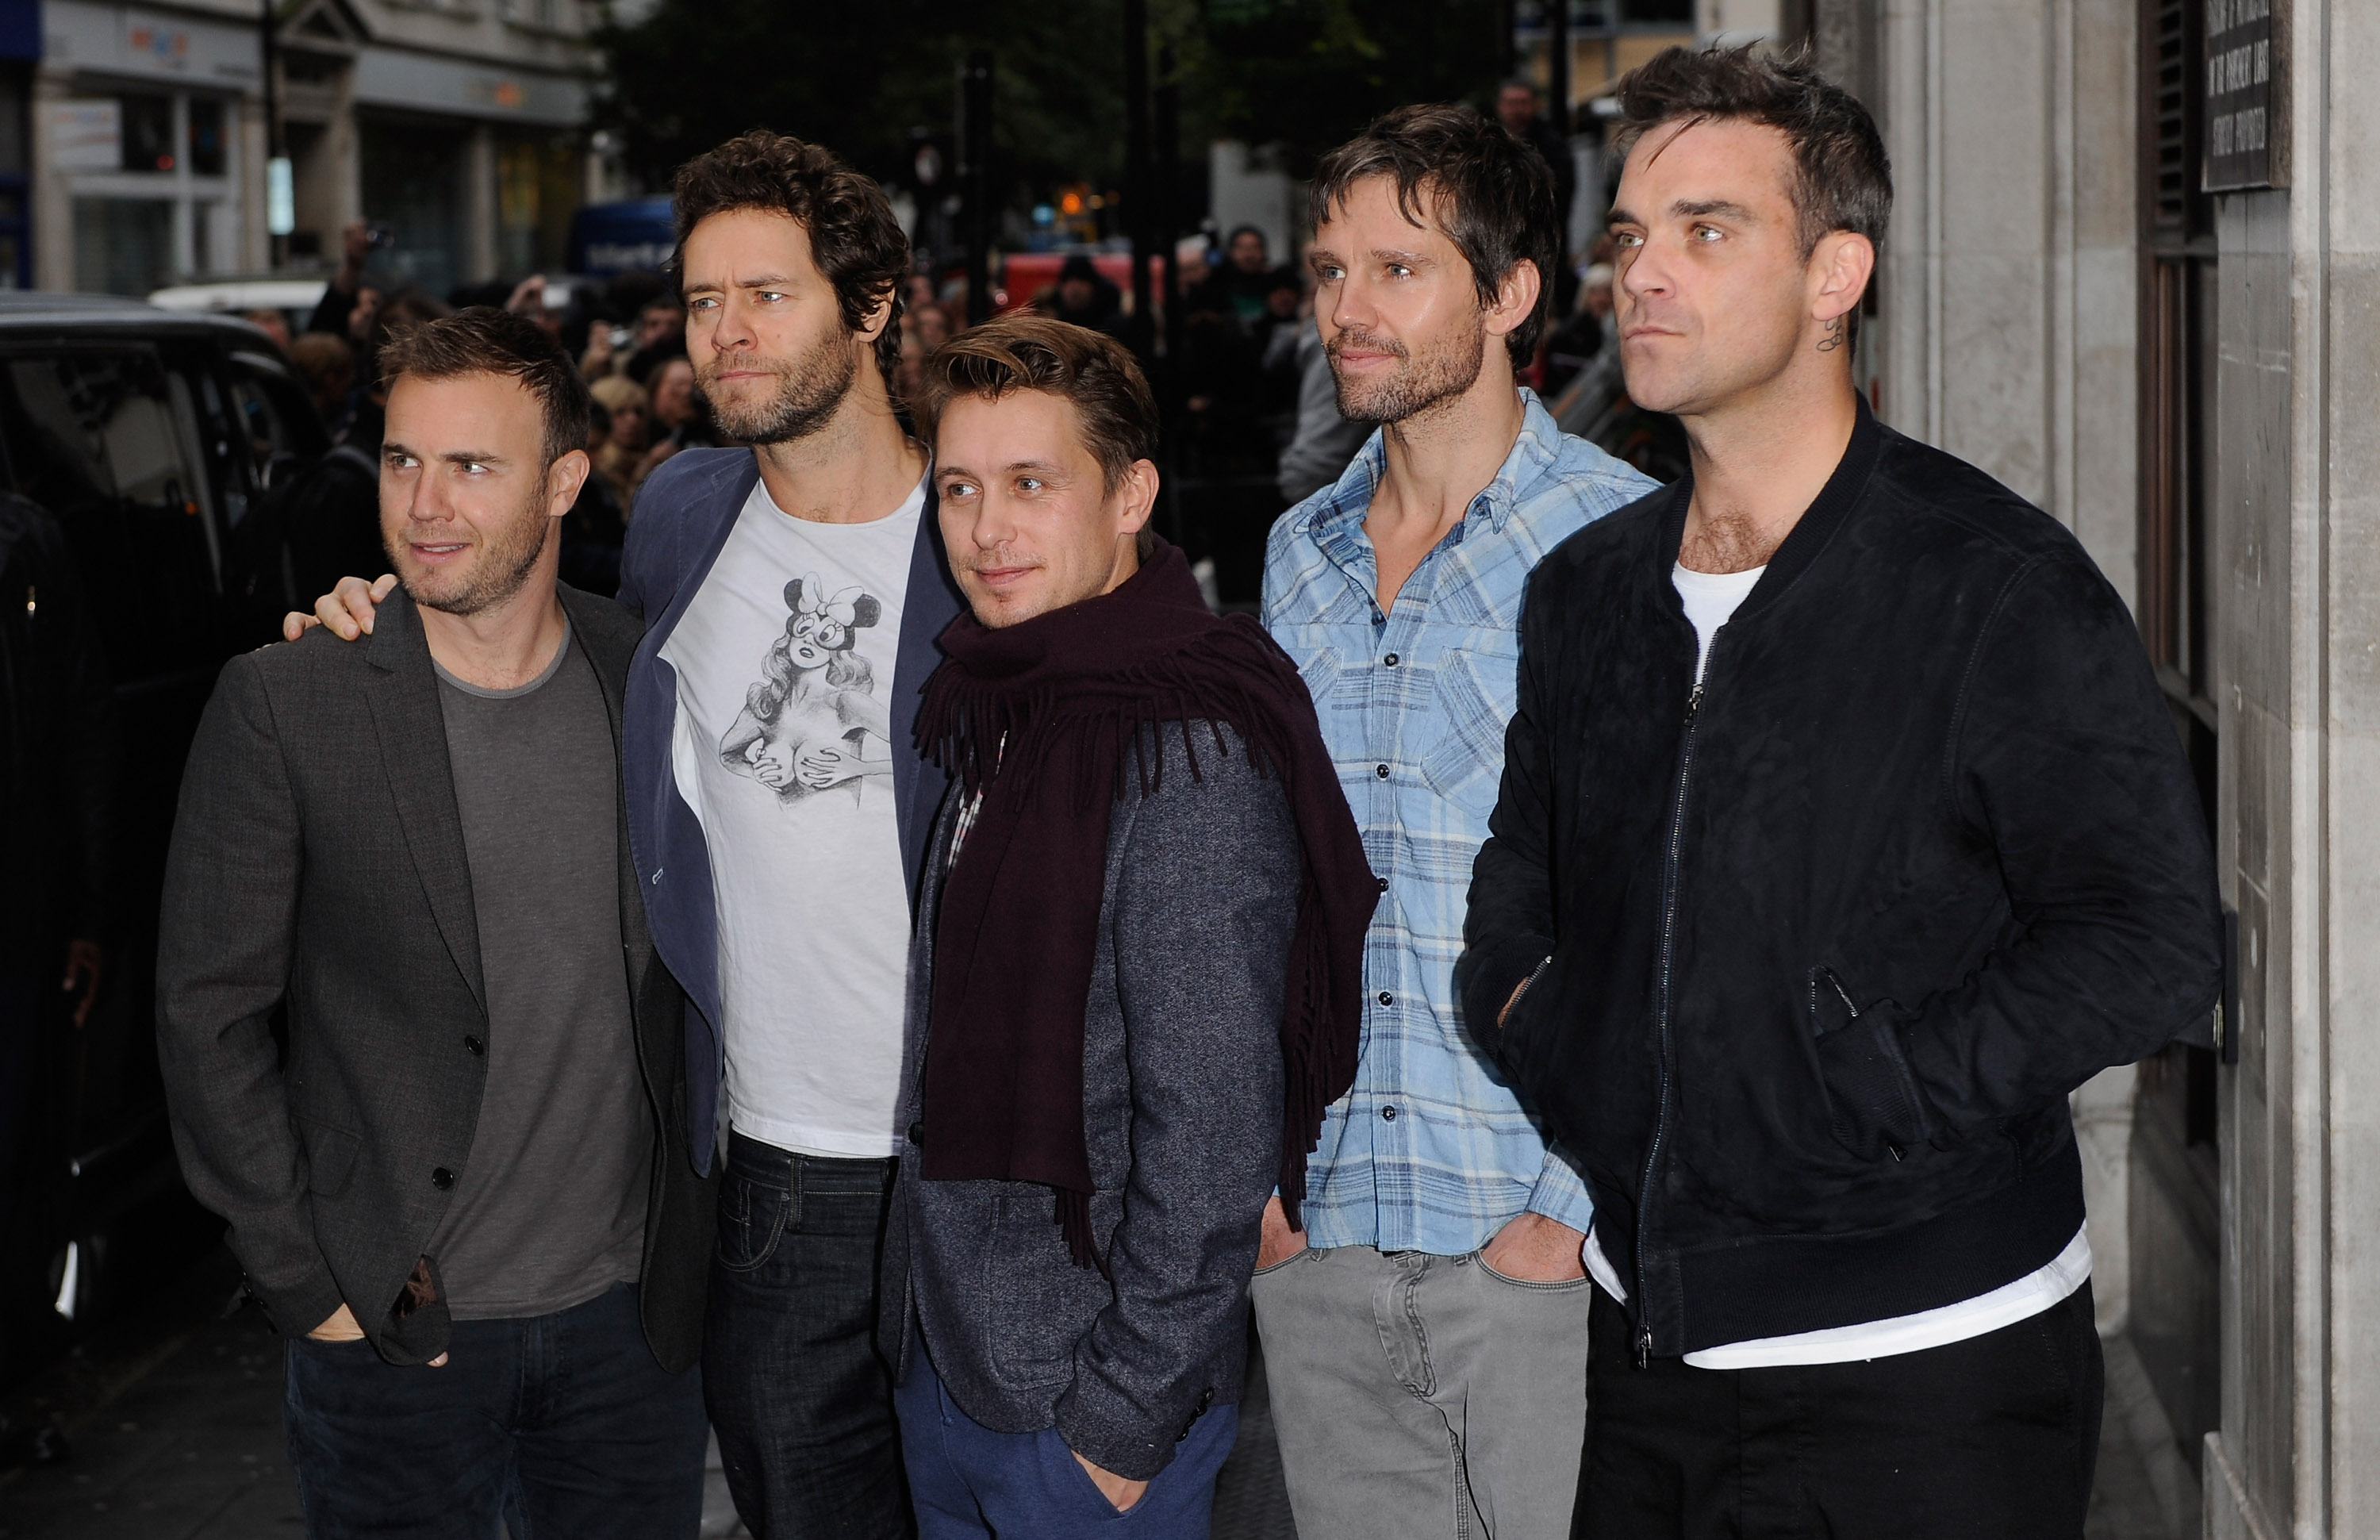 Will Robbie Williams and Jason Orange reunite with Take That for 25th anniversary plans?